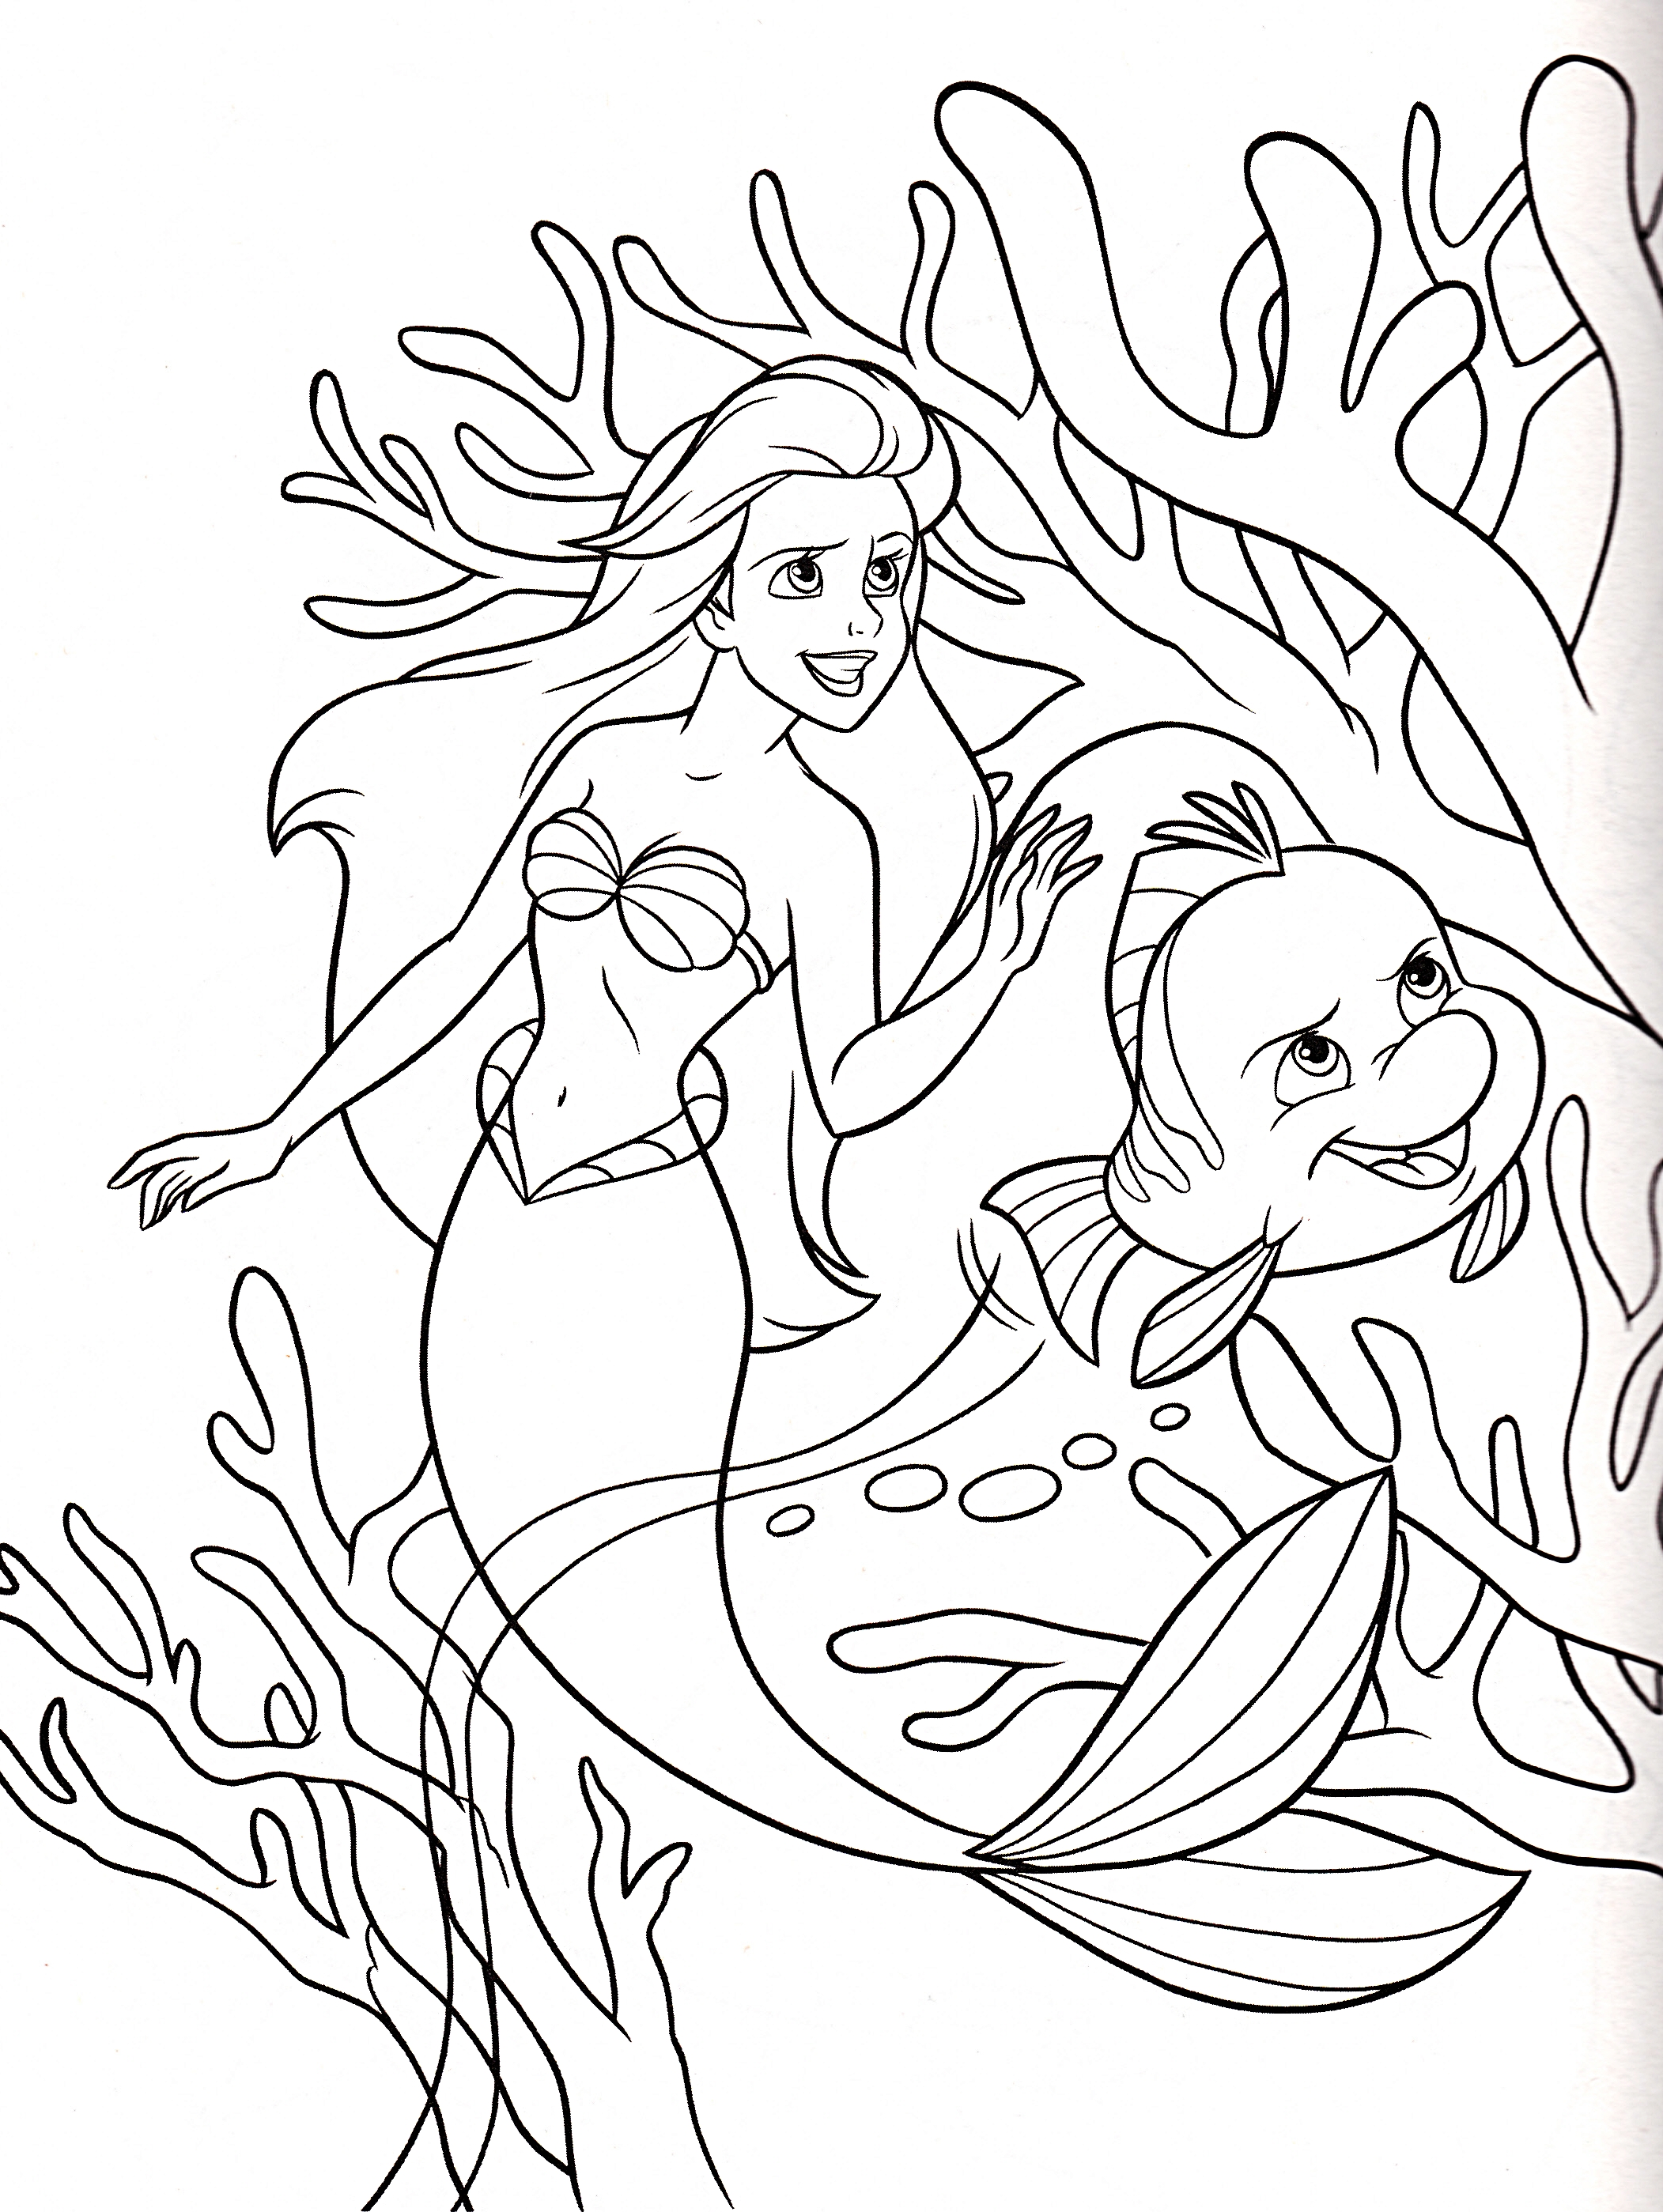 coloring pages disney - photo#32